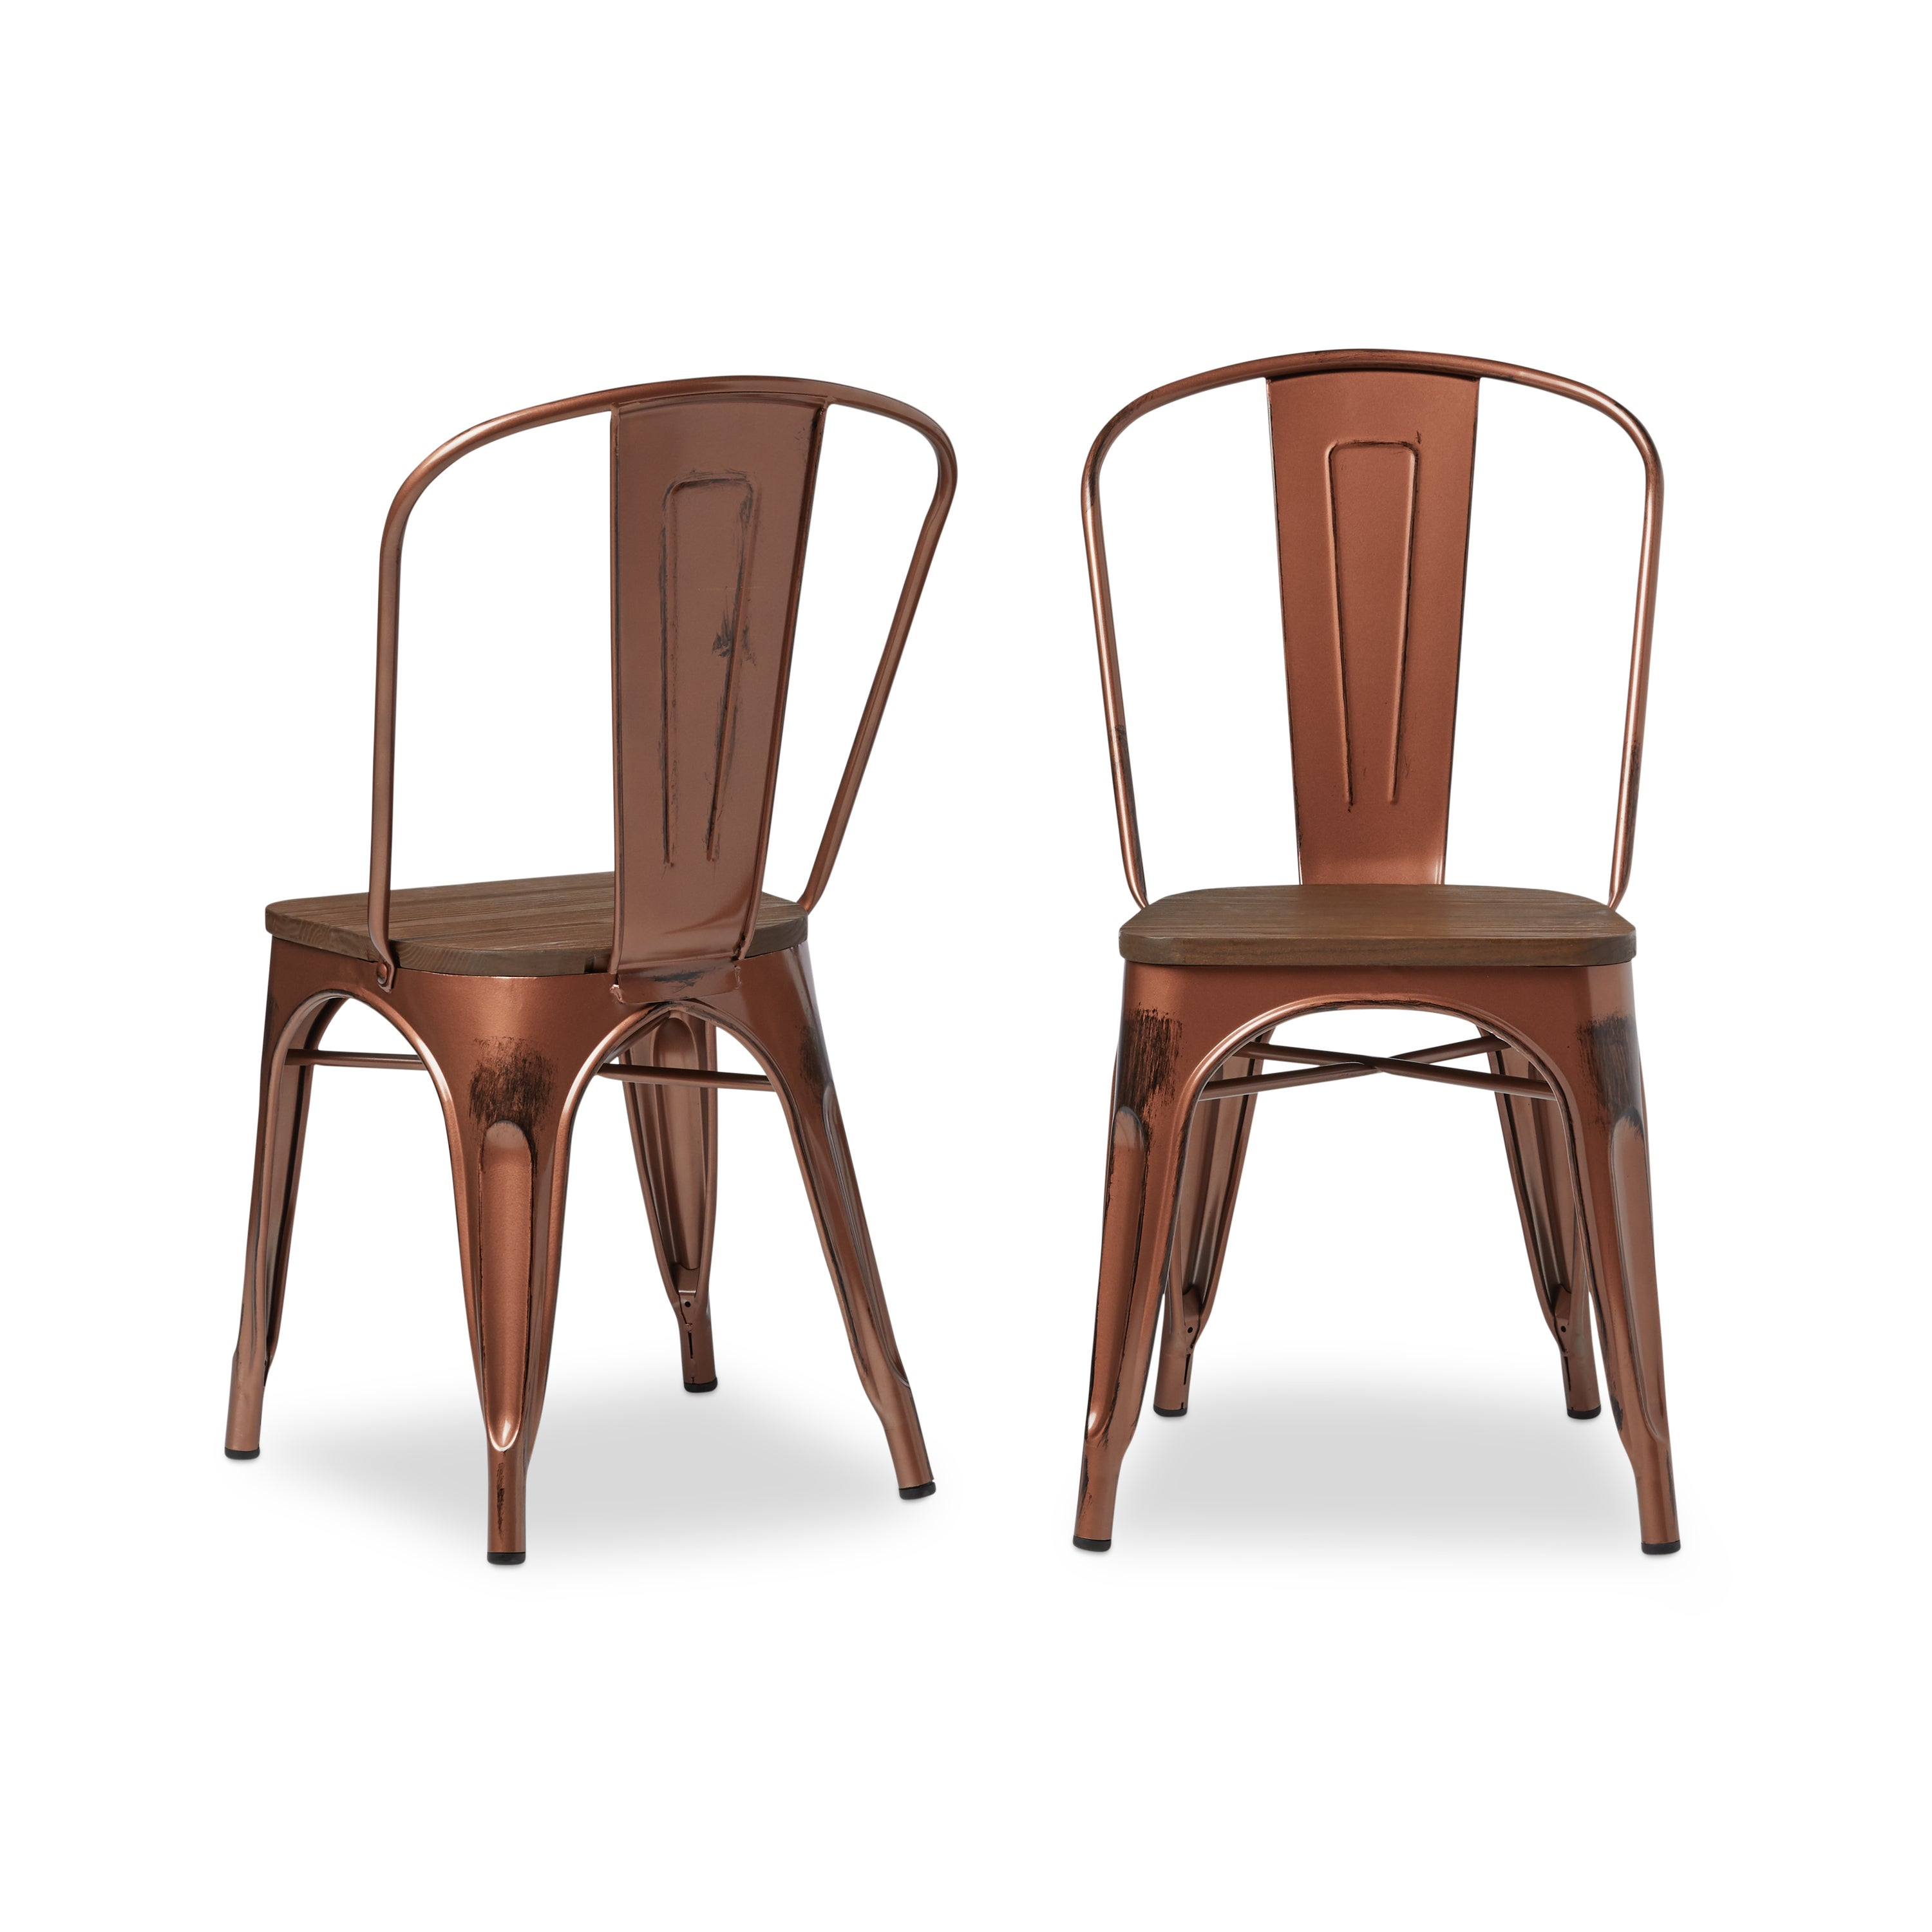 Carbon Loft Tabouret Brushed Copper Wood Seat Bistro Chairs (Set Of 2)    Free Shipping Today   Overstock   16706414